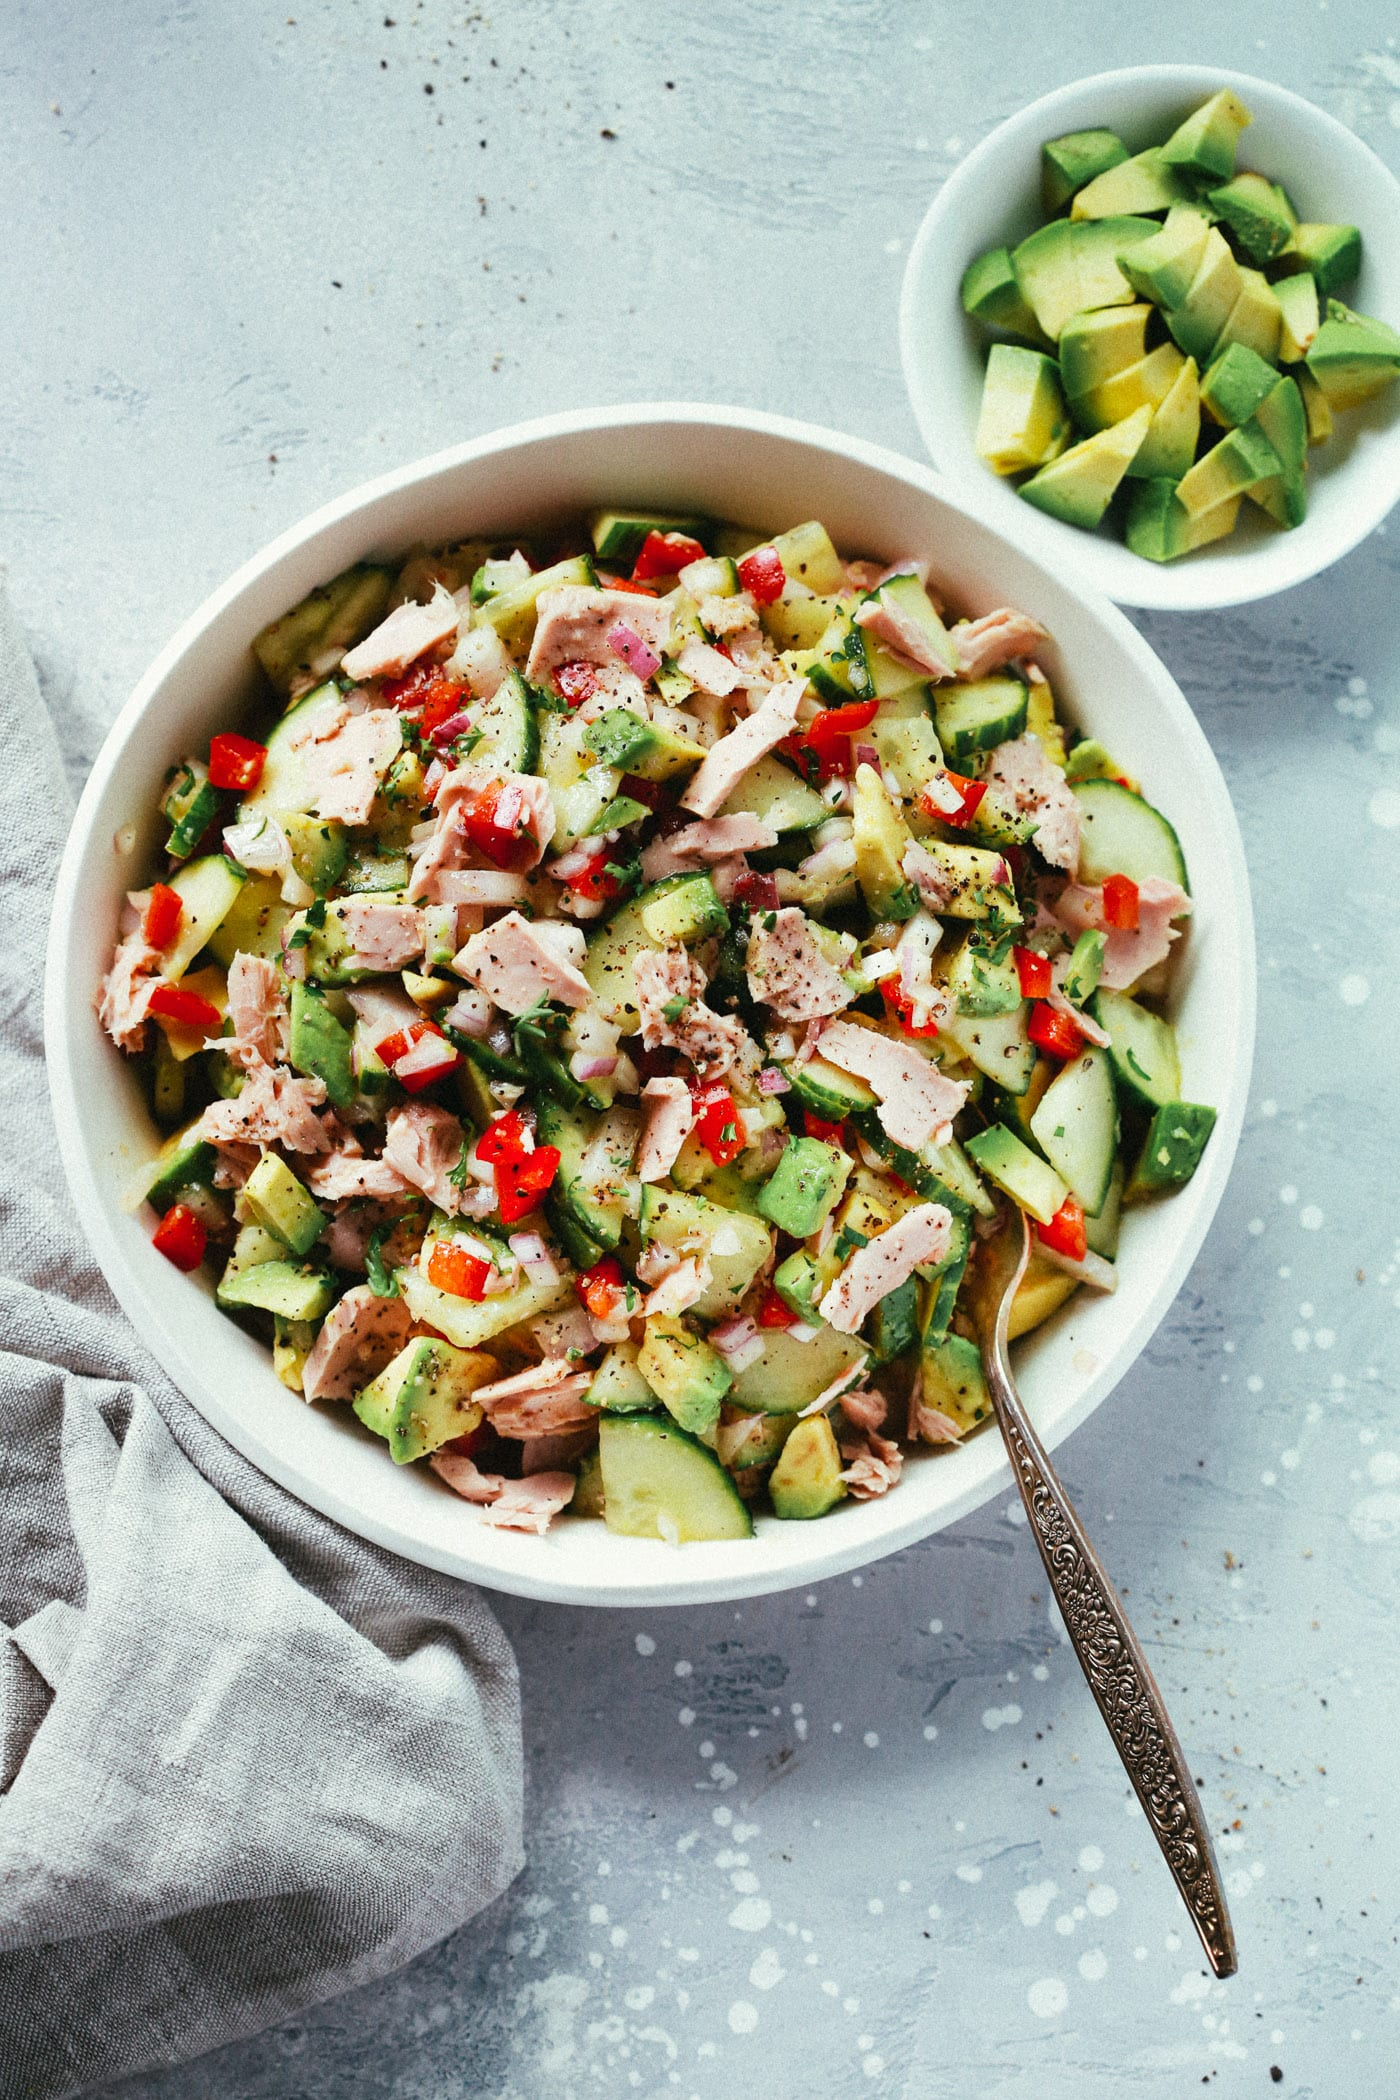 Super Easy Avocado Cucumber Tuna Salad Primavera Kitchen